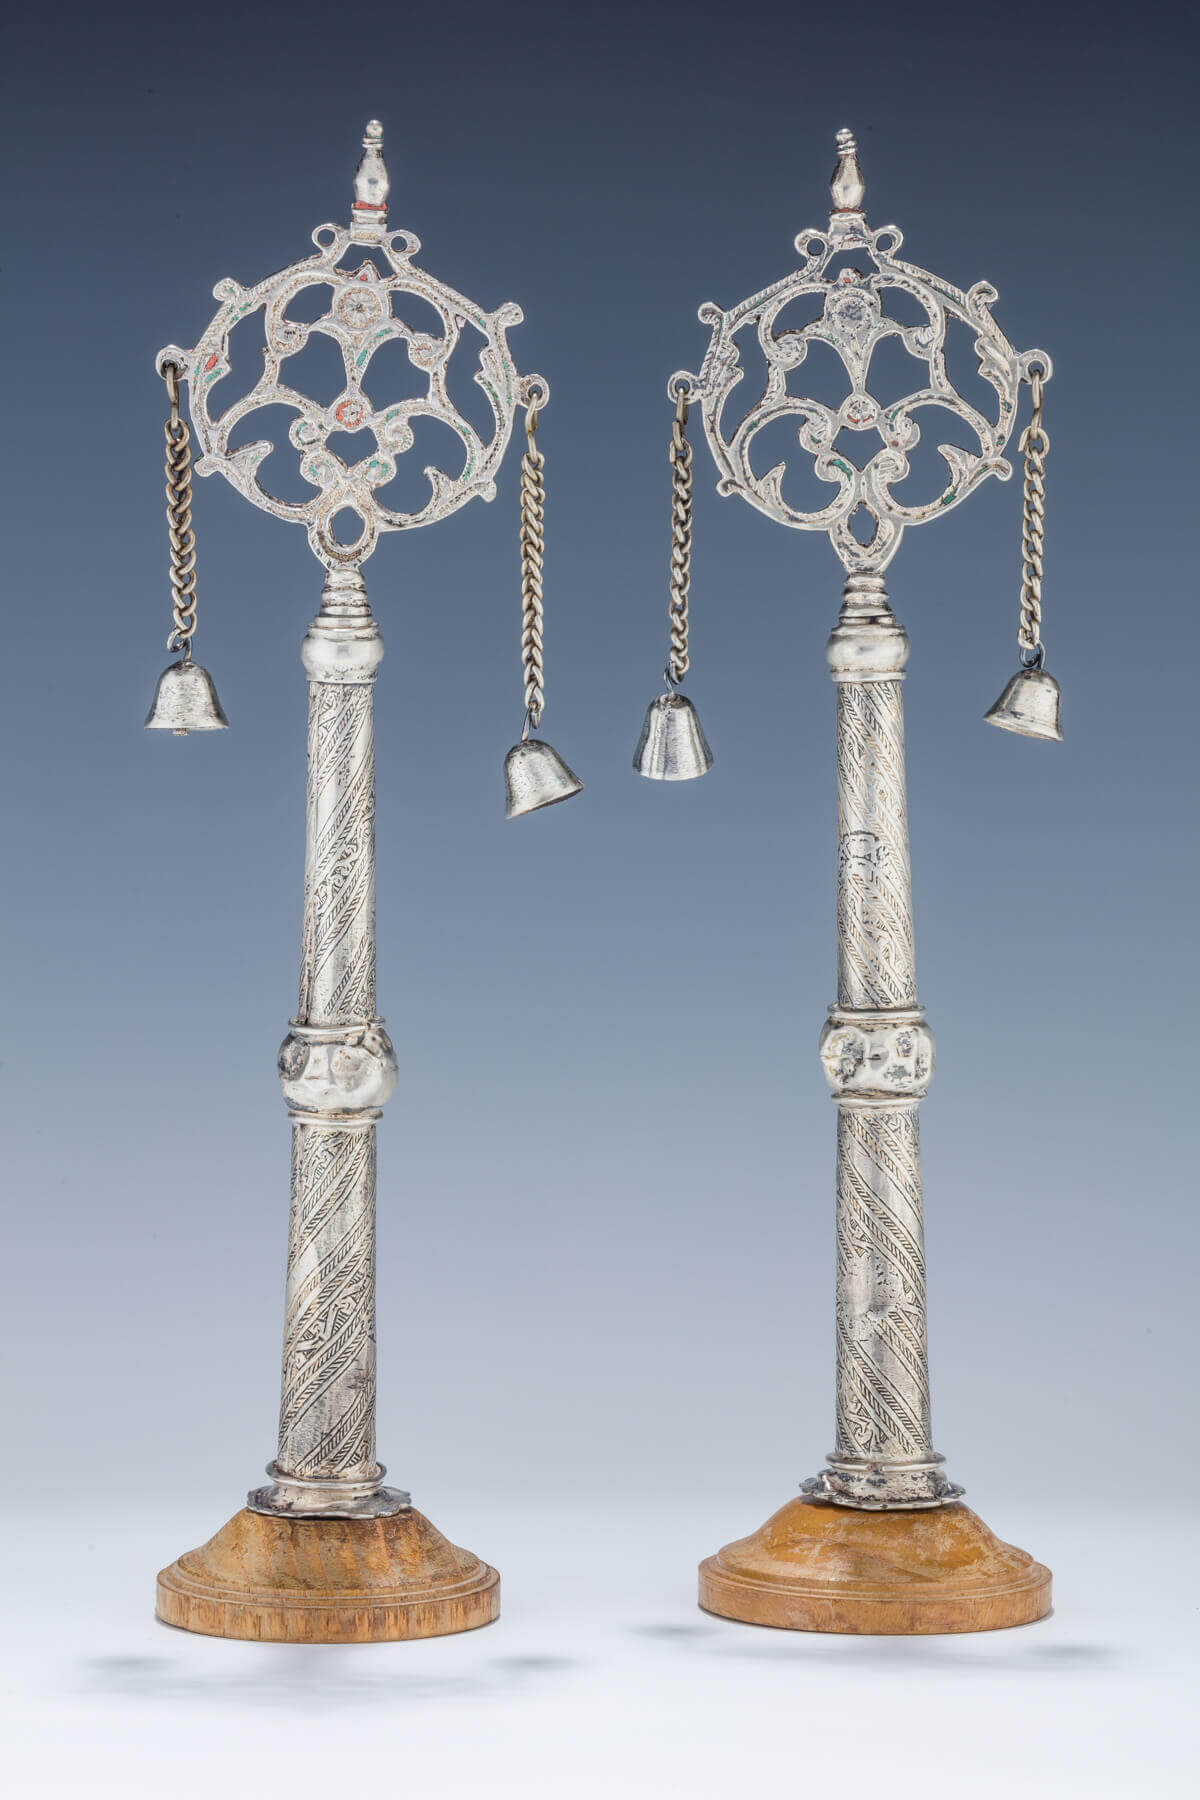 086. A PAIR OF SILVER TORAH FINIALS